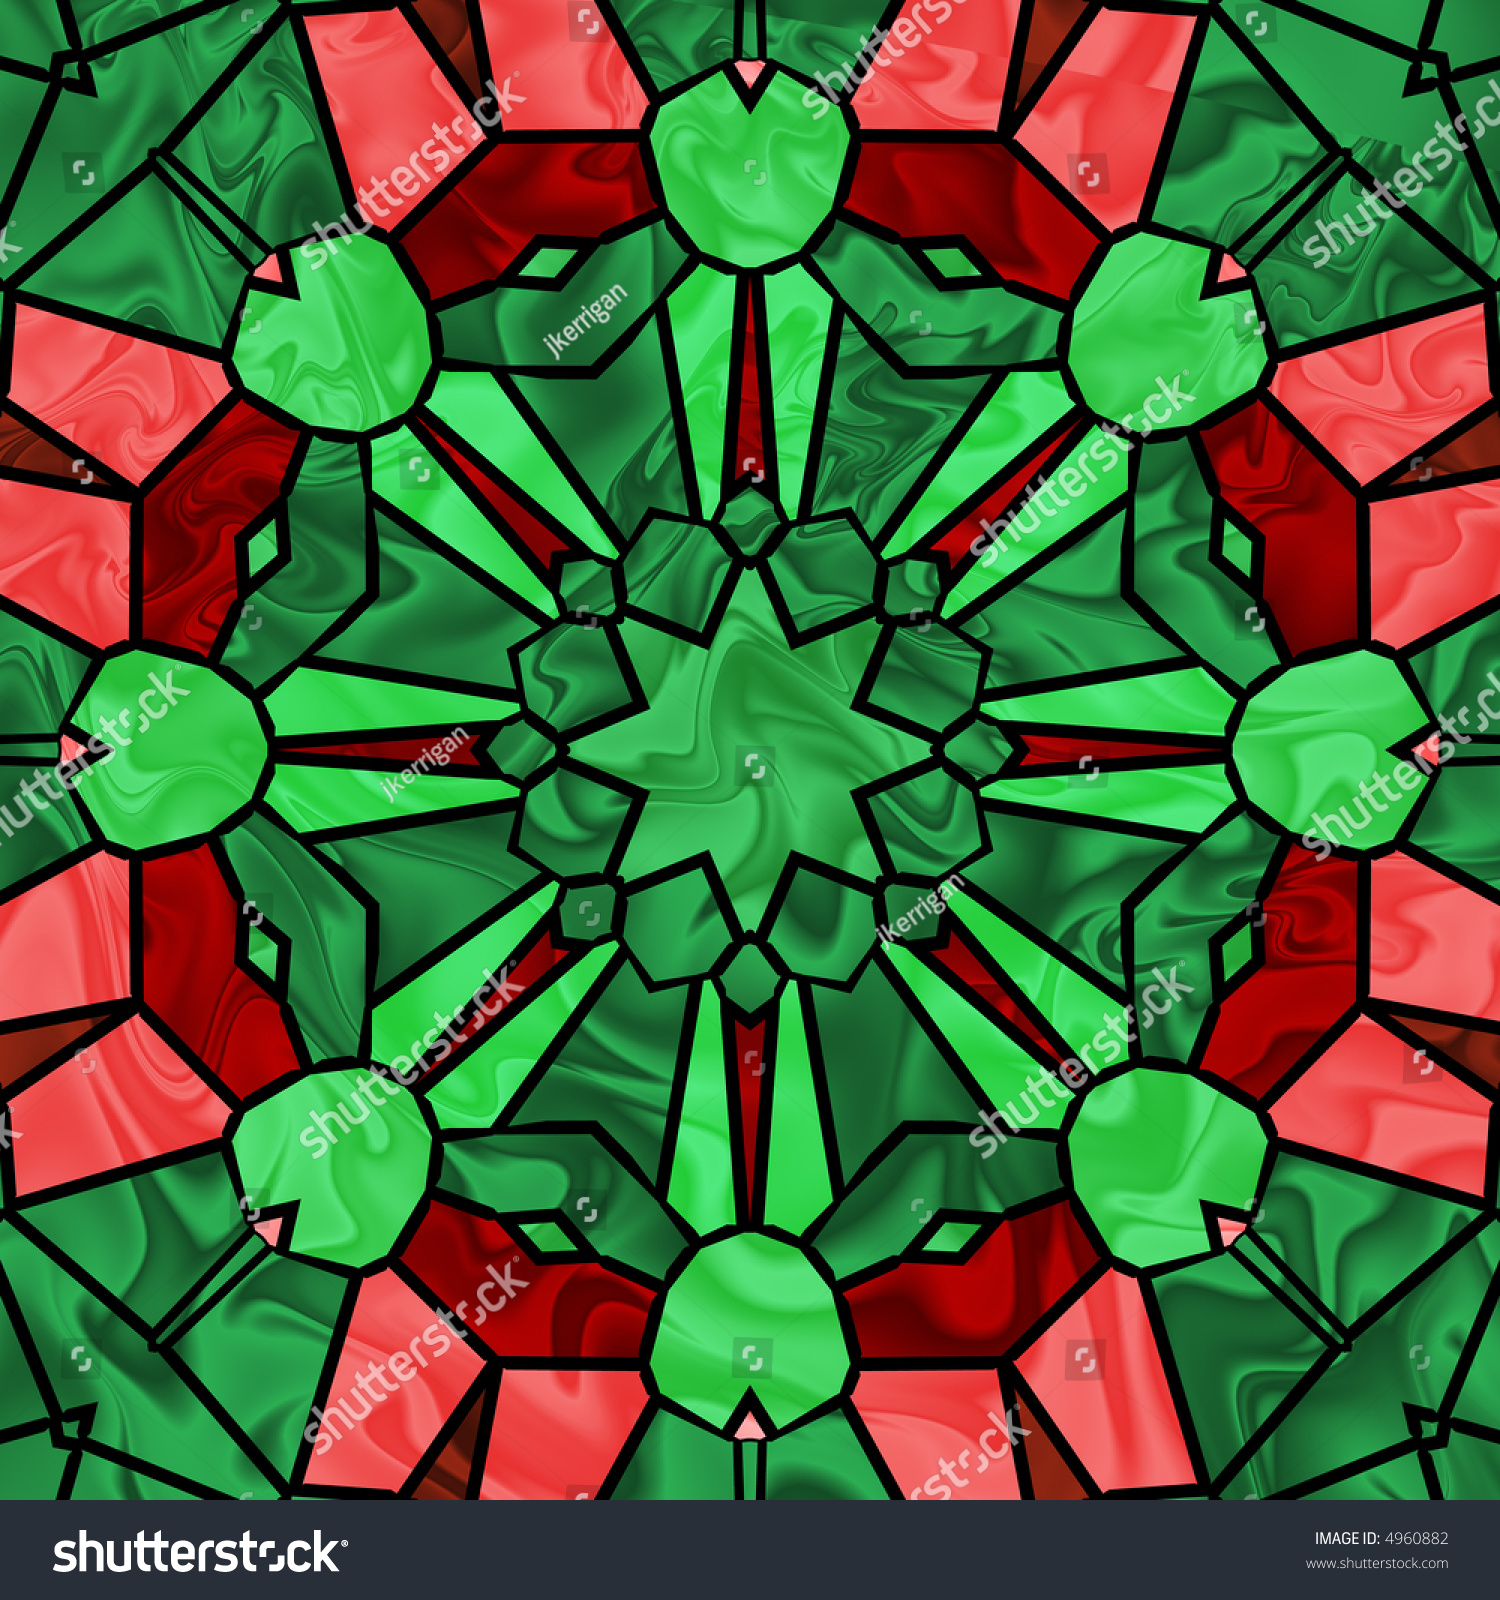 stained glass image pretty christmas colors stock illustration